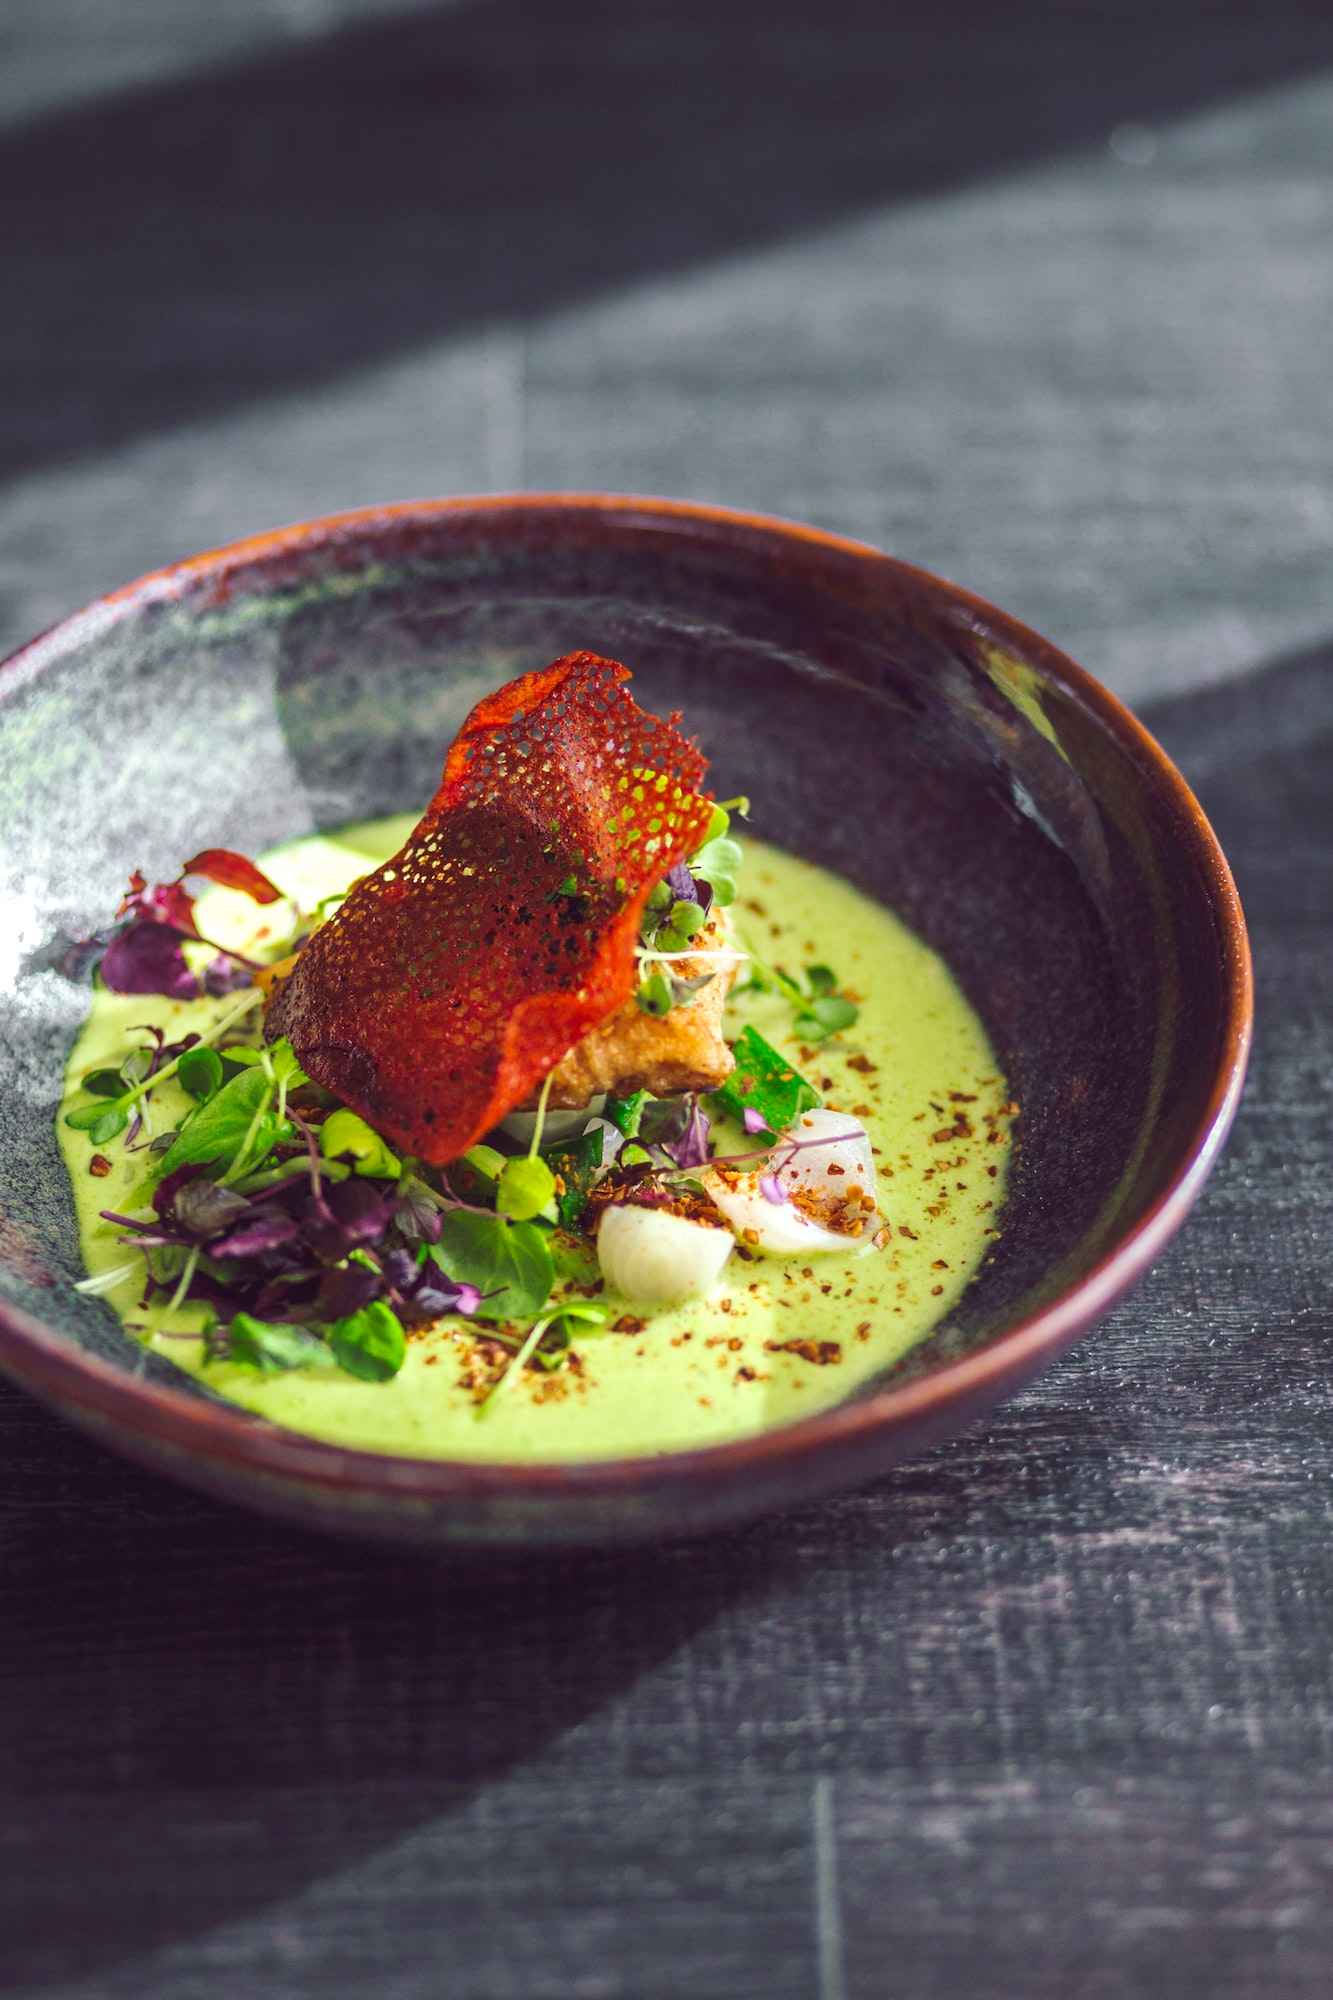 Fine dining restaurants typically have words such as escargot, carpaccio, foie gras, truffles, and lobster on the menu